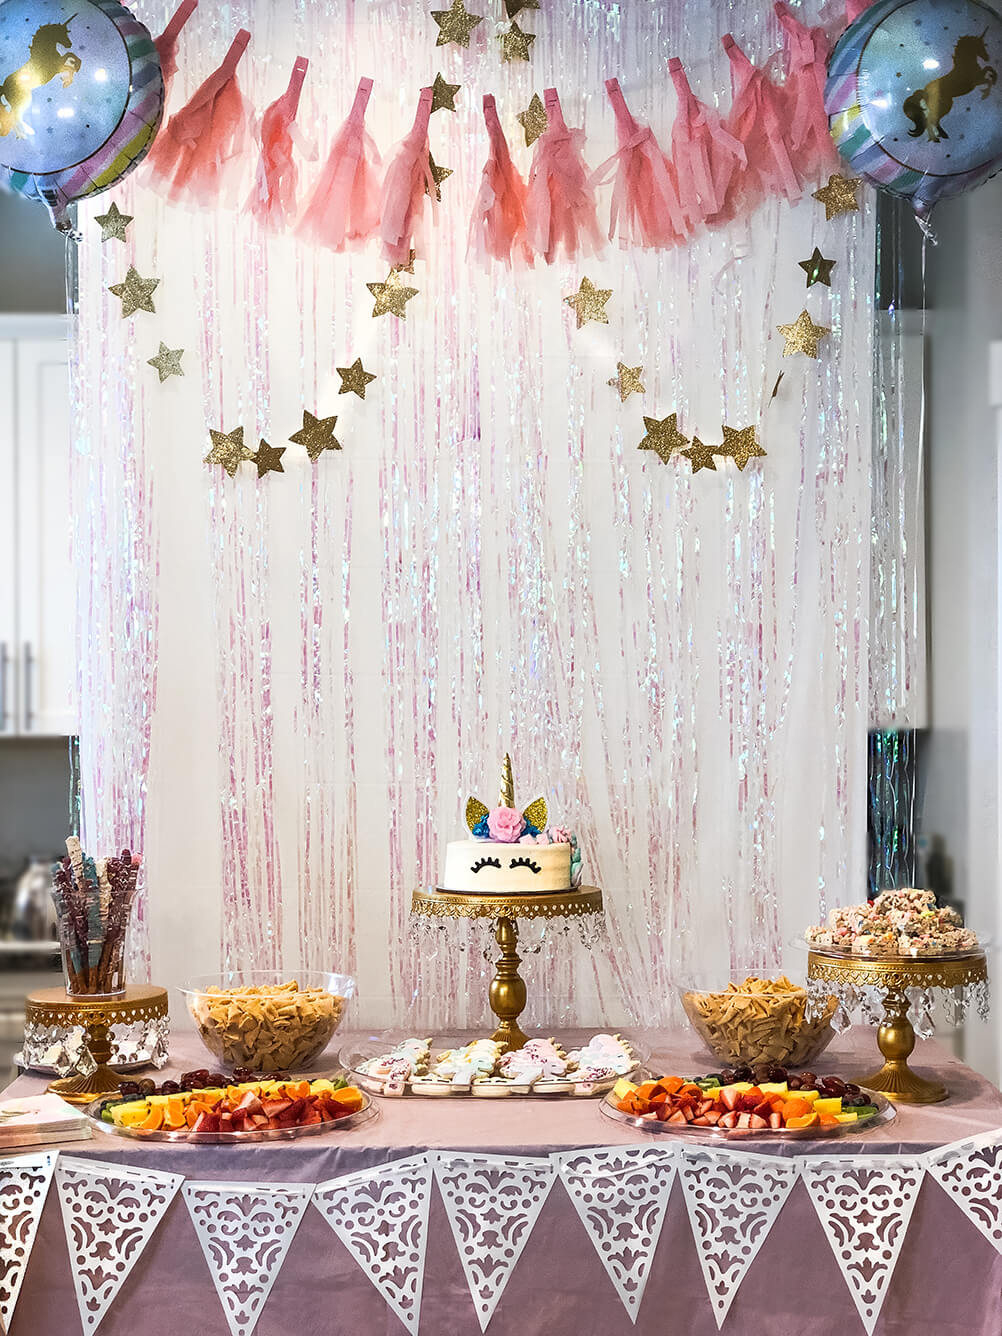 Food table Unicorn themed birthday party ideas